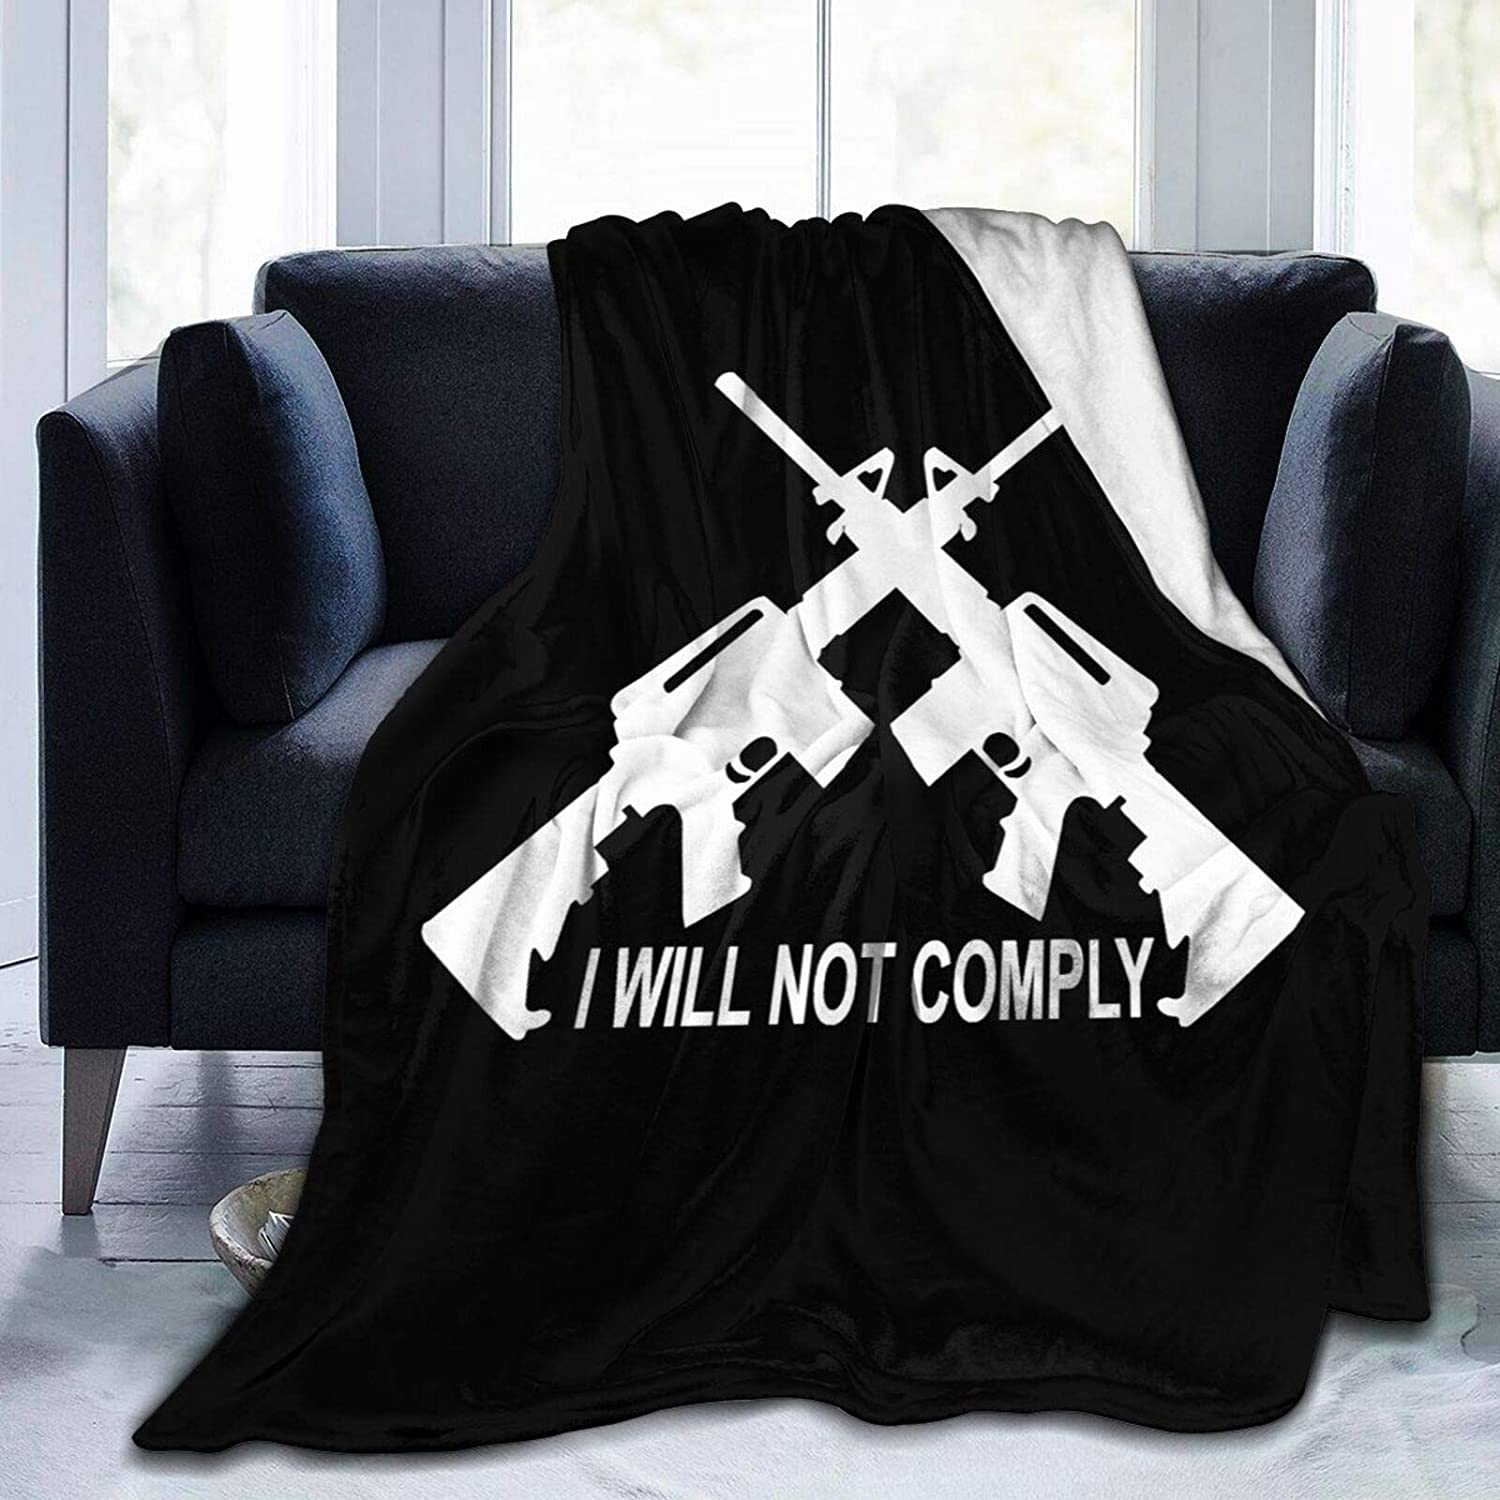 I Will Not Comply Blanket Super Comfortable and Micro Soft Popular brand in Quality inspection the world